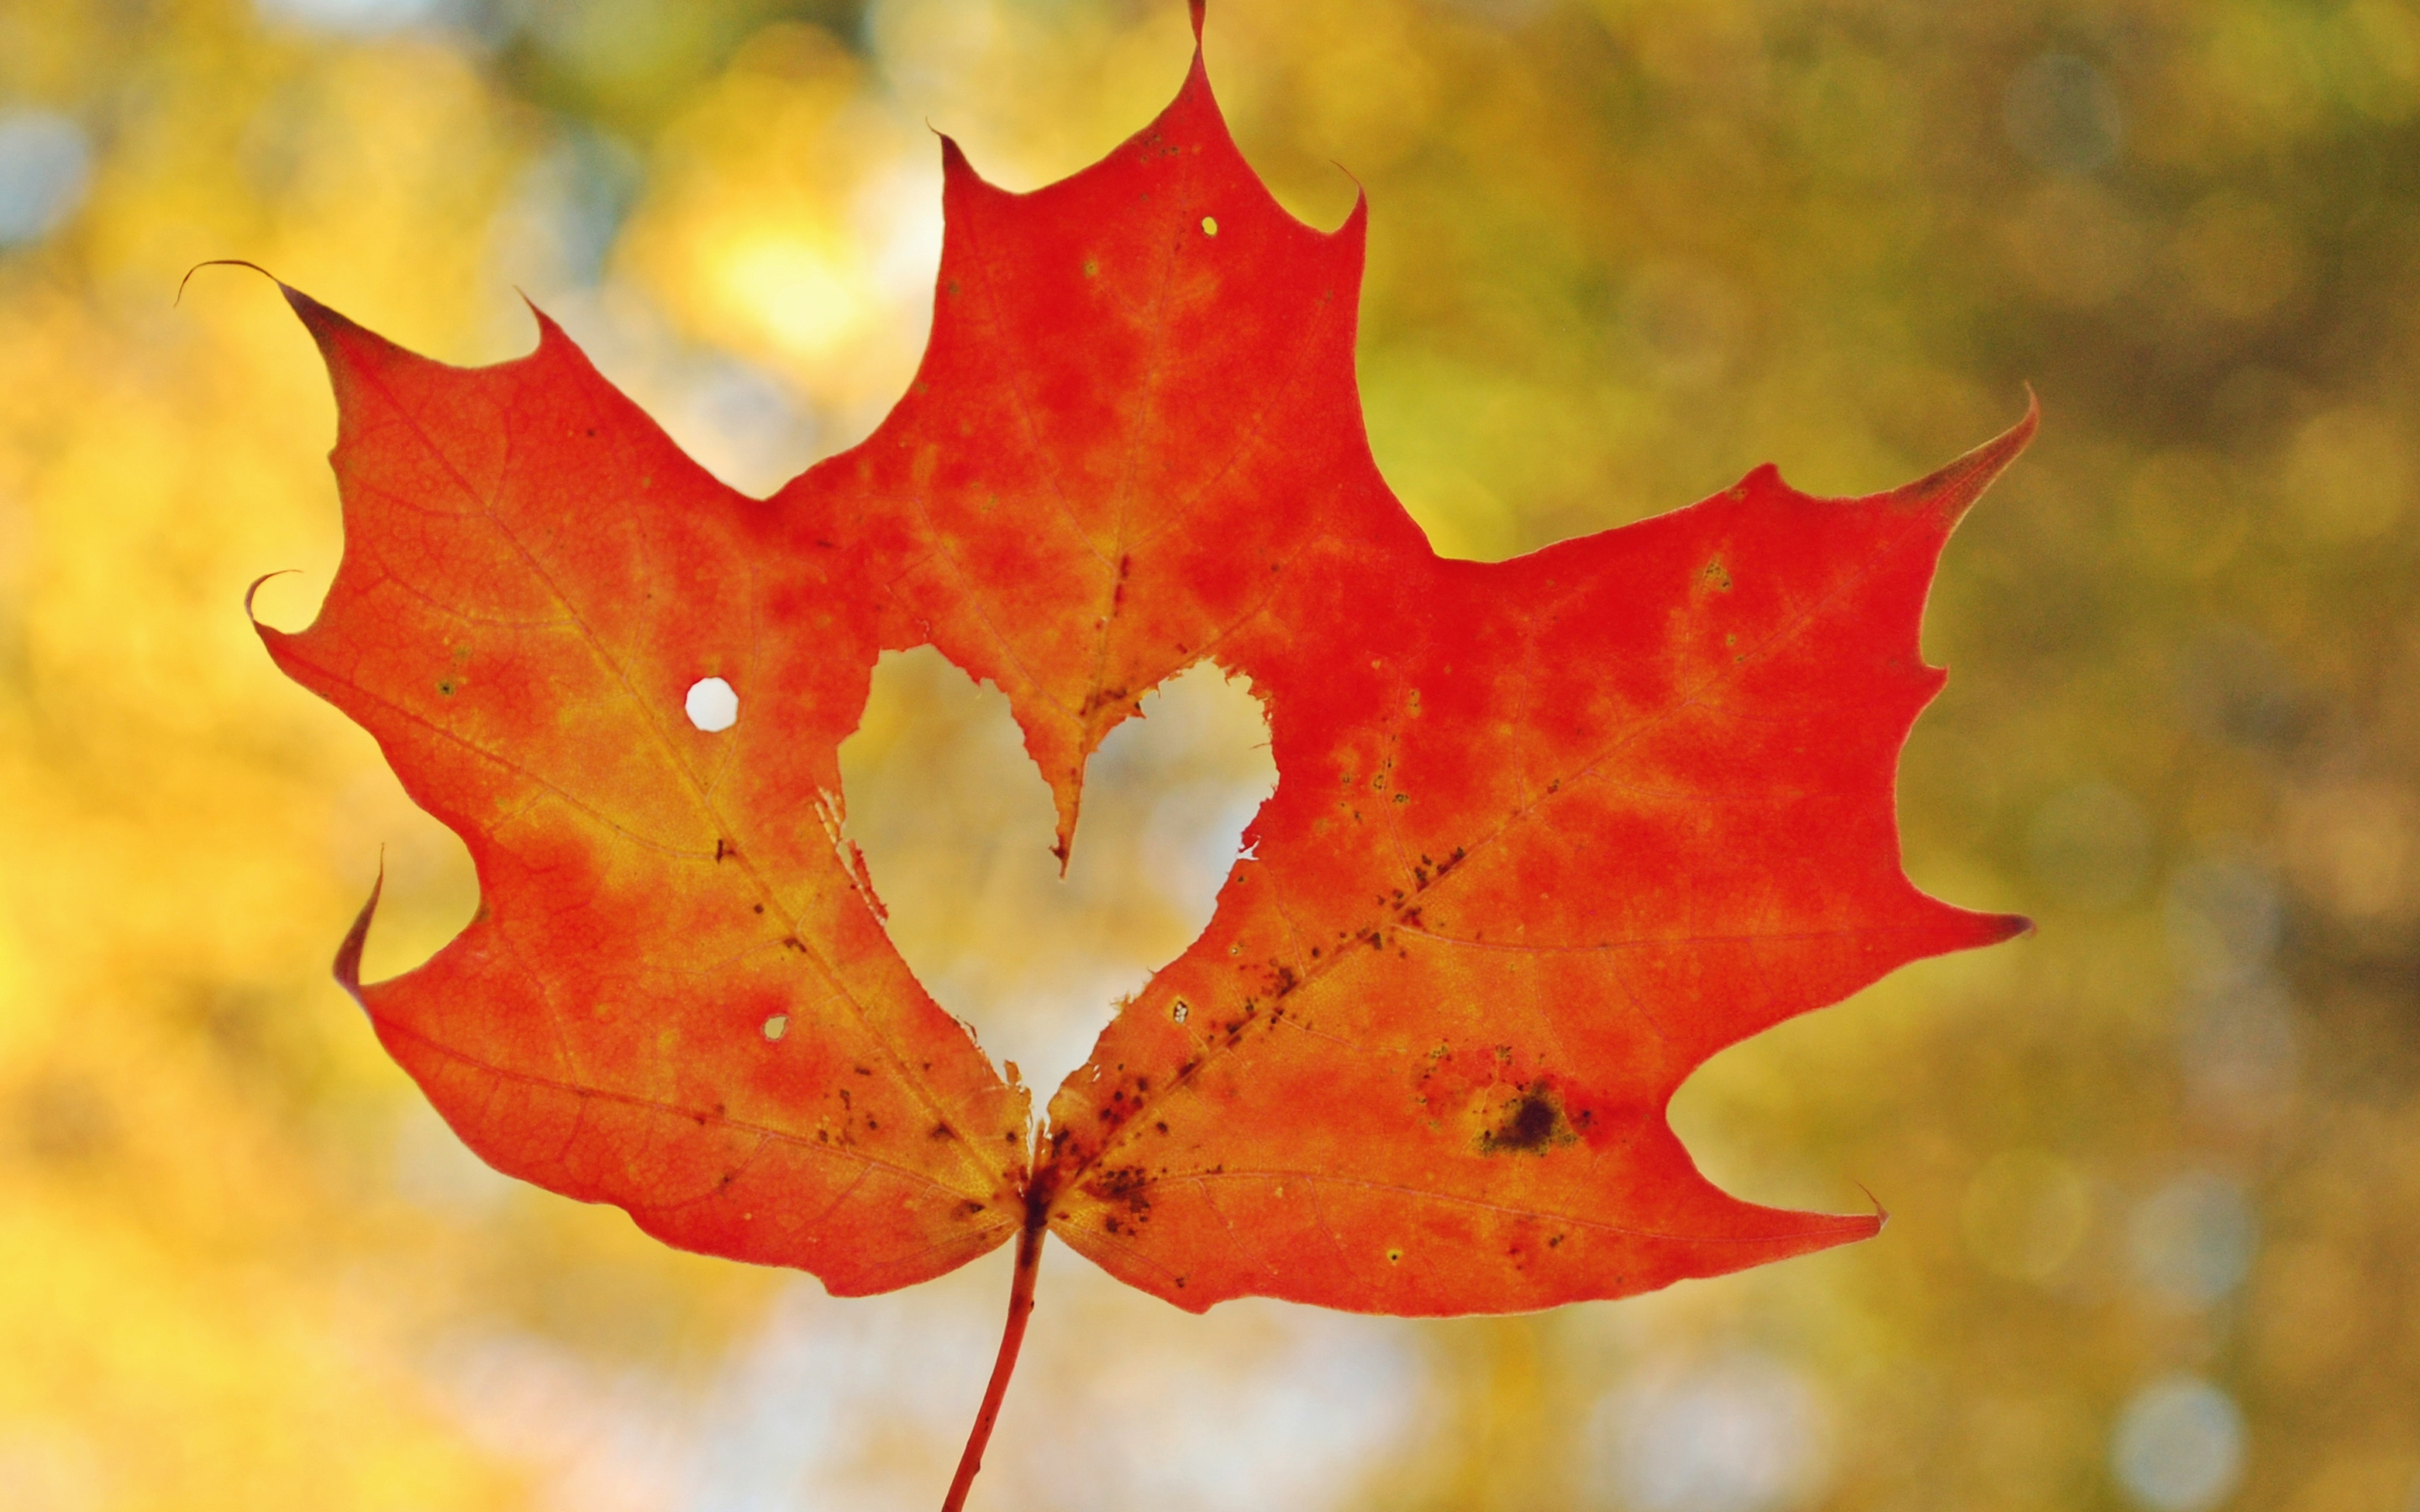 Love Heart Maple Leaf494993012 - Love Heart Maple Leaf - Poppies, Maple, Love, leaf, Heart